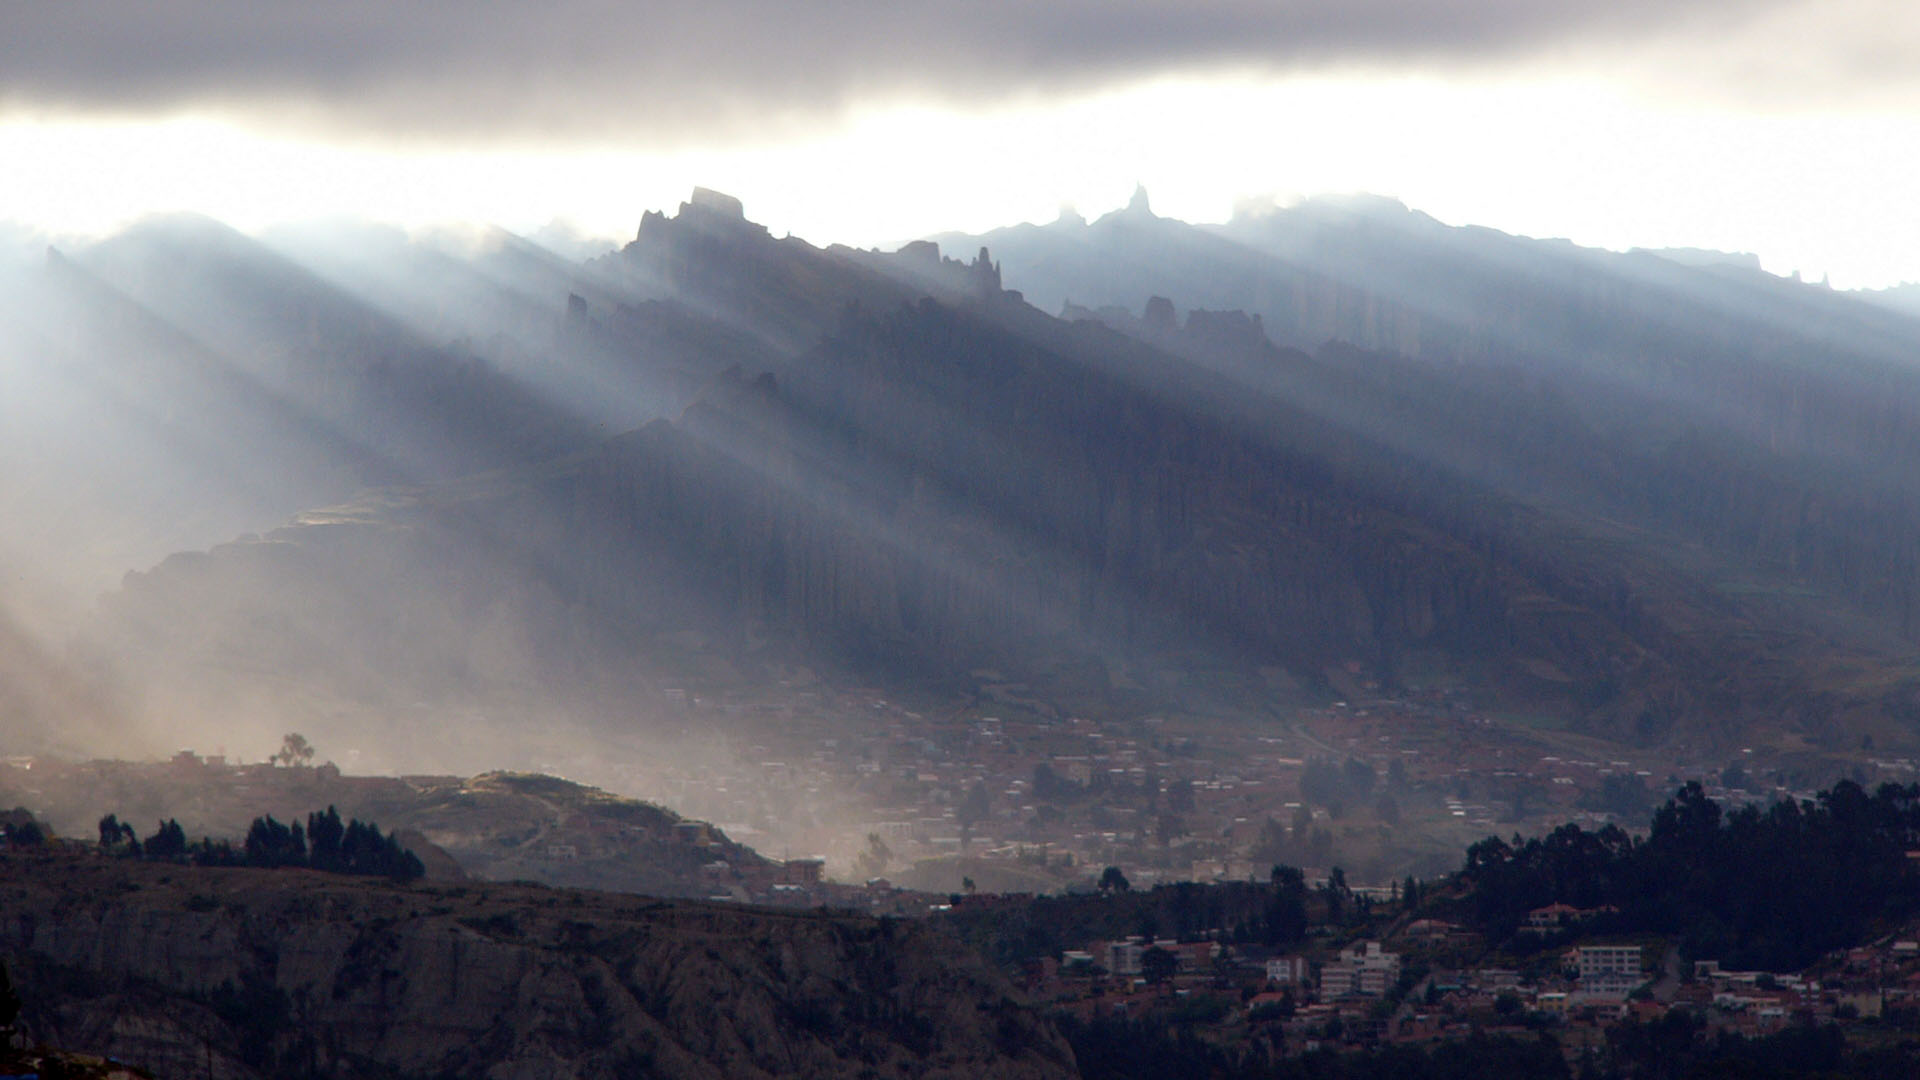 Valle de las Animas en La Paz - Bolivia (Valley of the Spirits in La Paz - Bolivia)